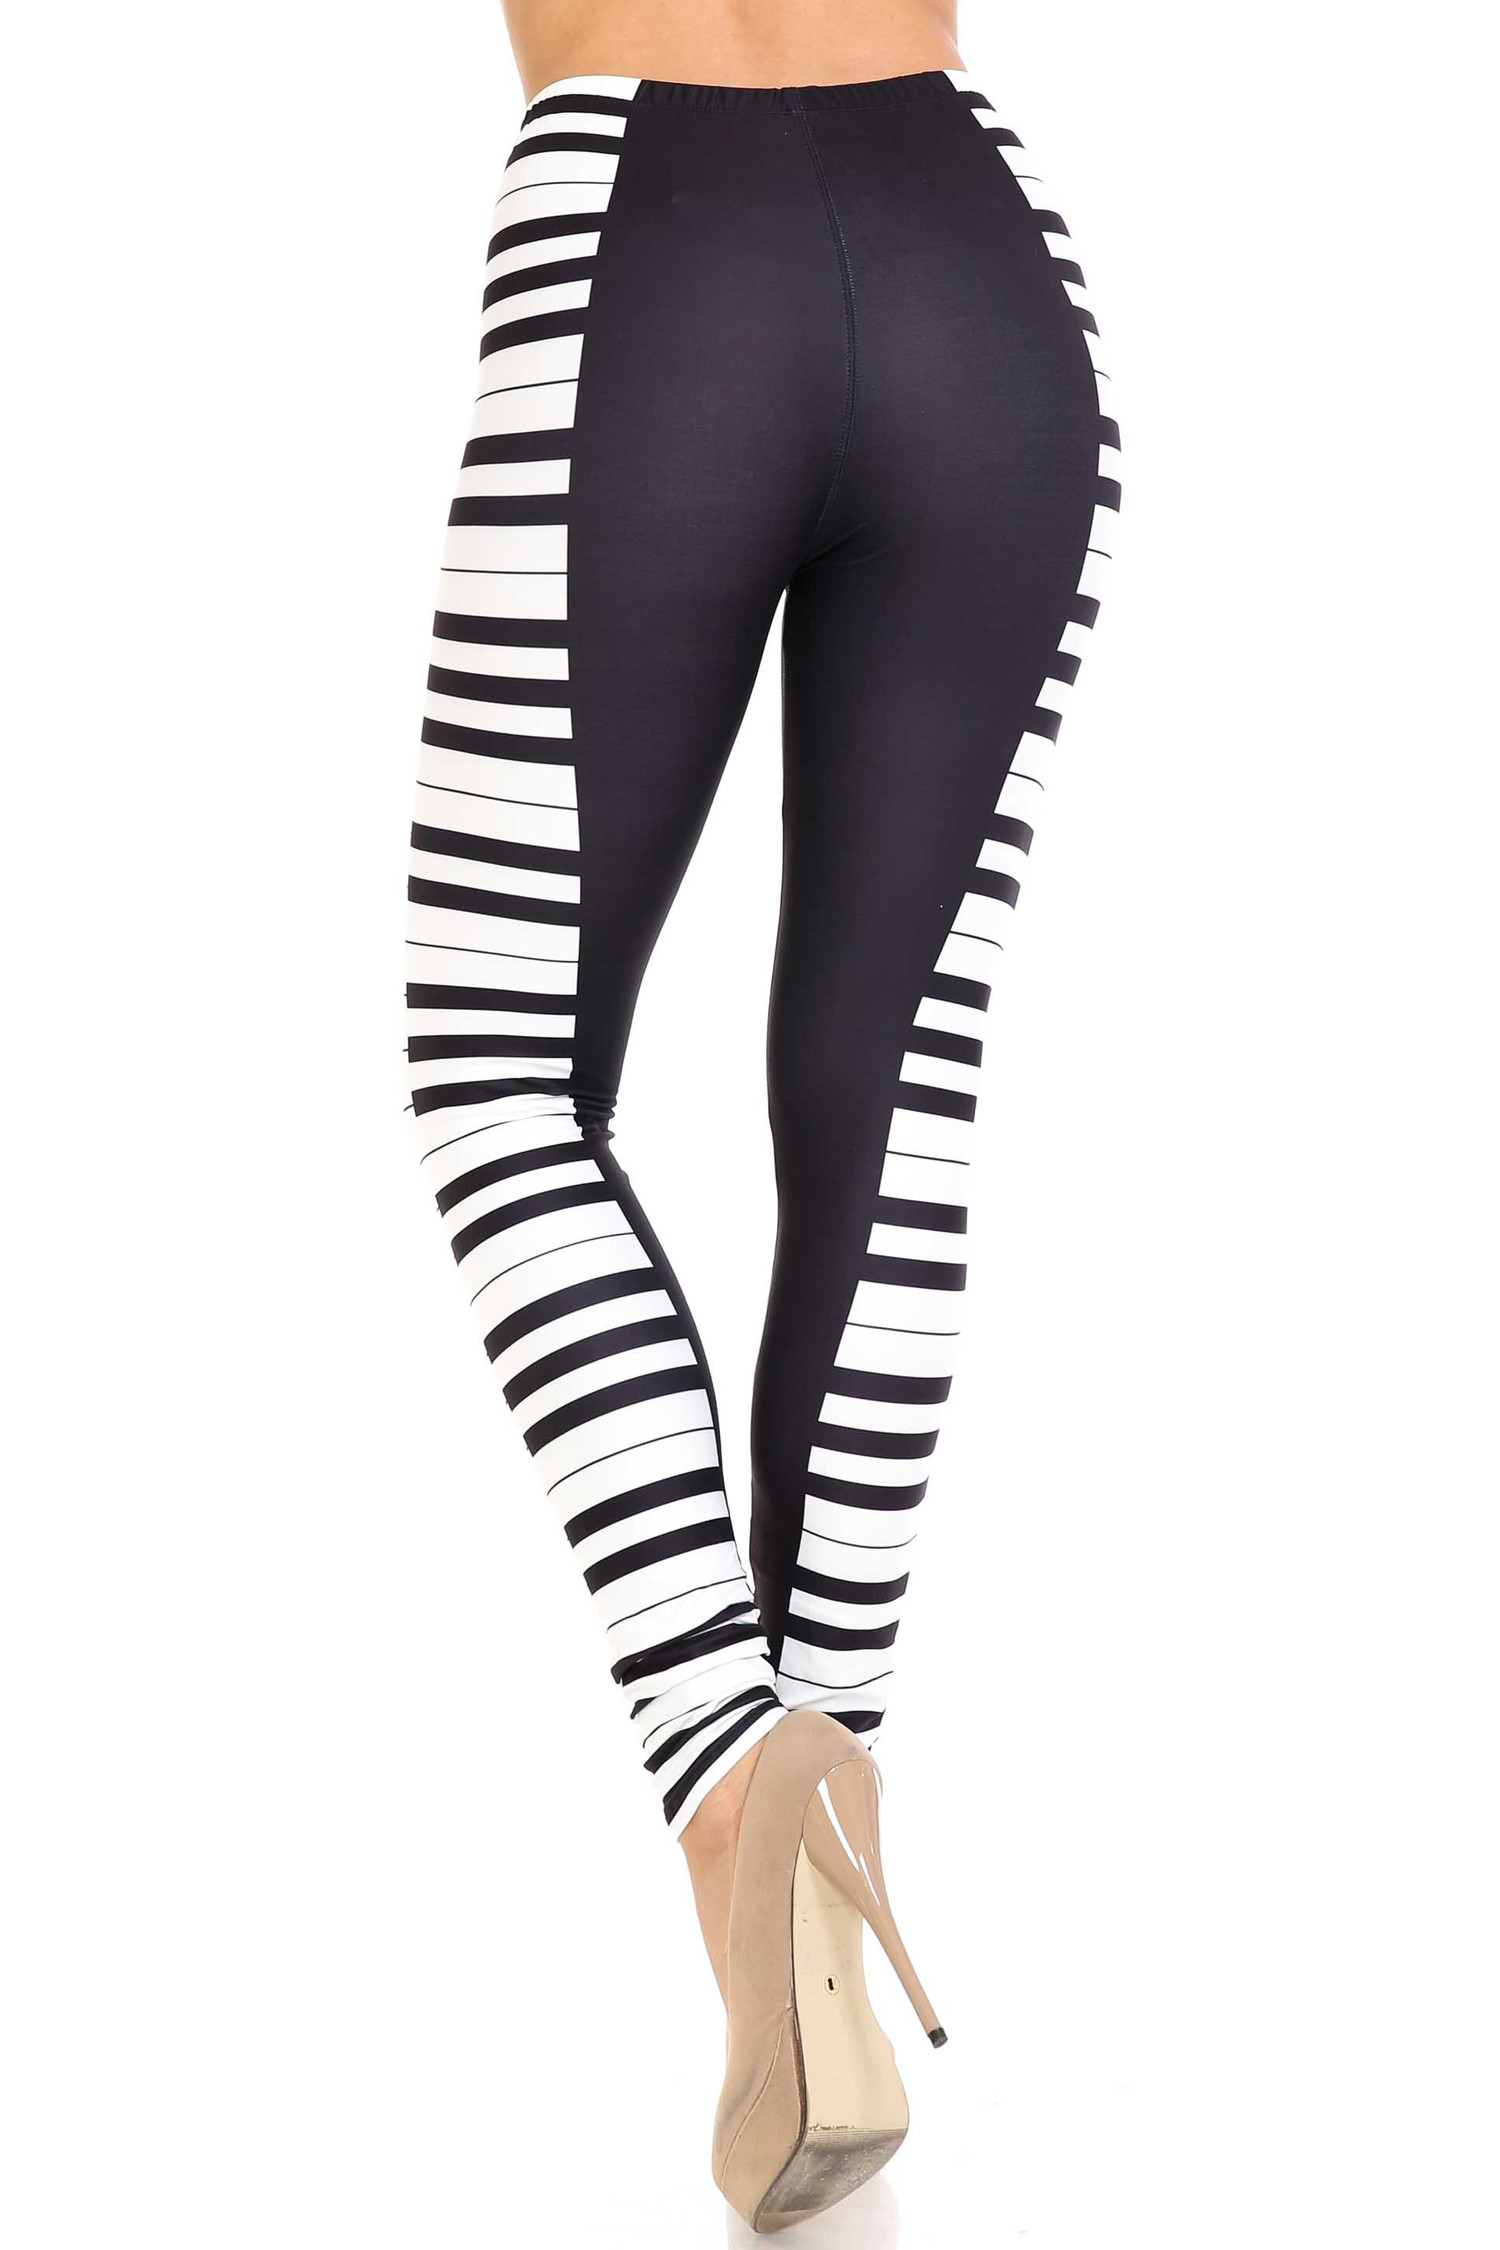 Creamy Soft Keys of the Piano Plus Size Leggings - USA Fashion™